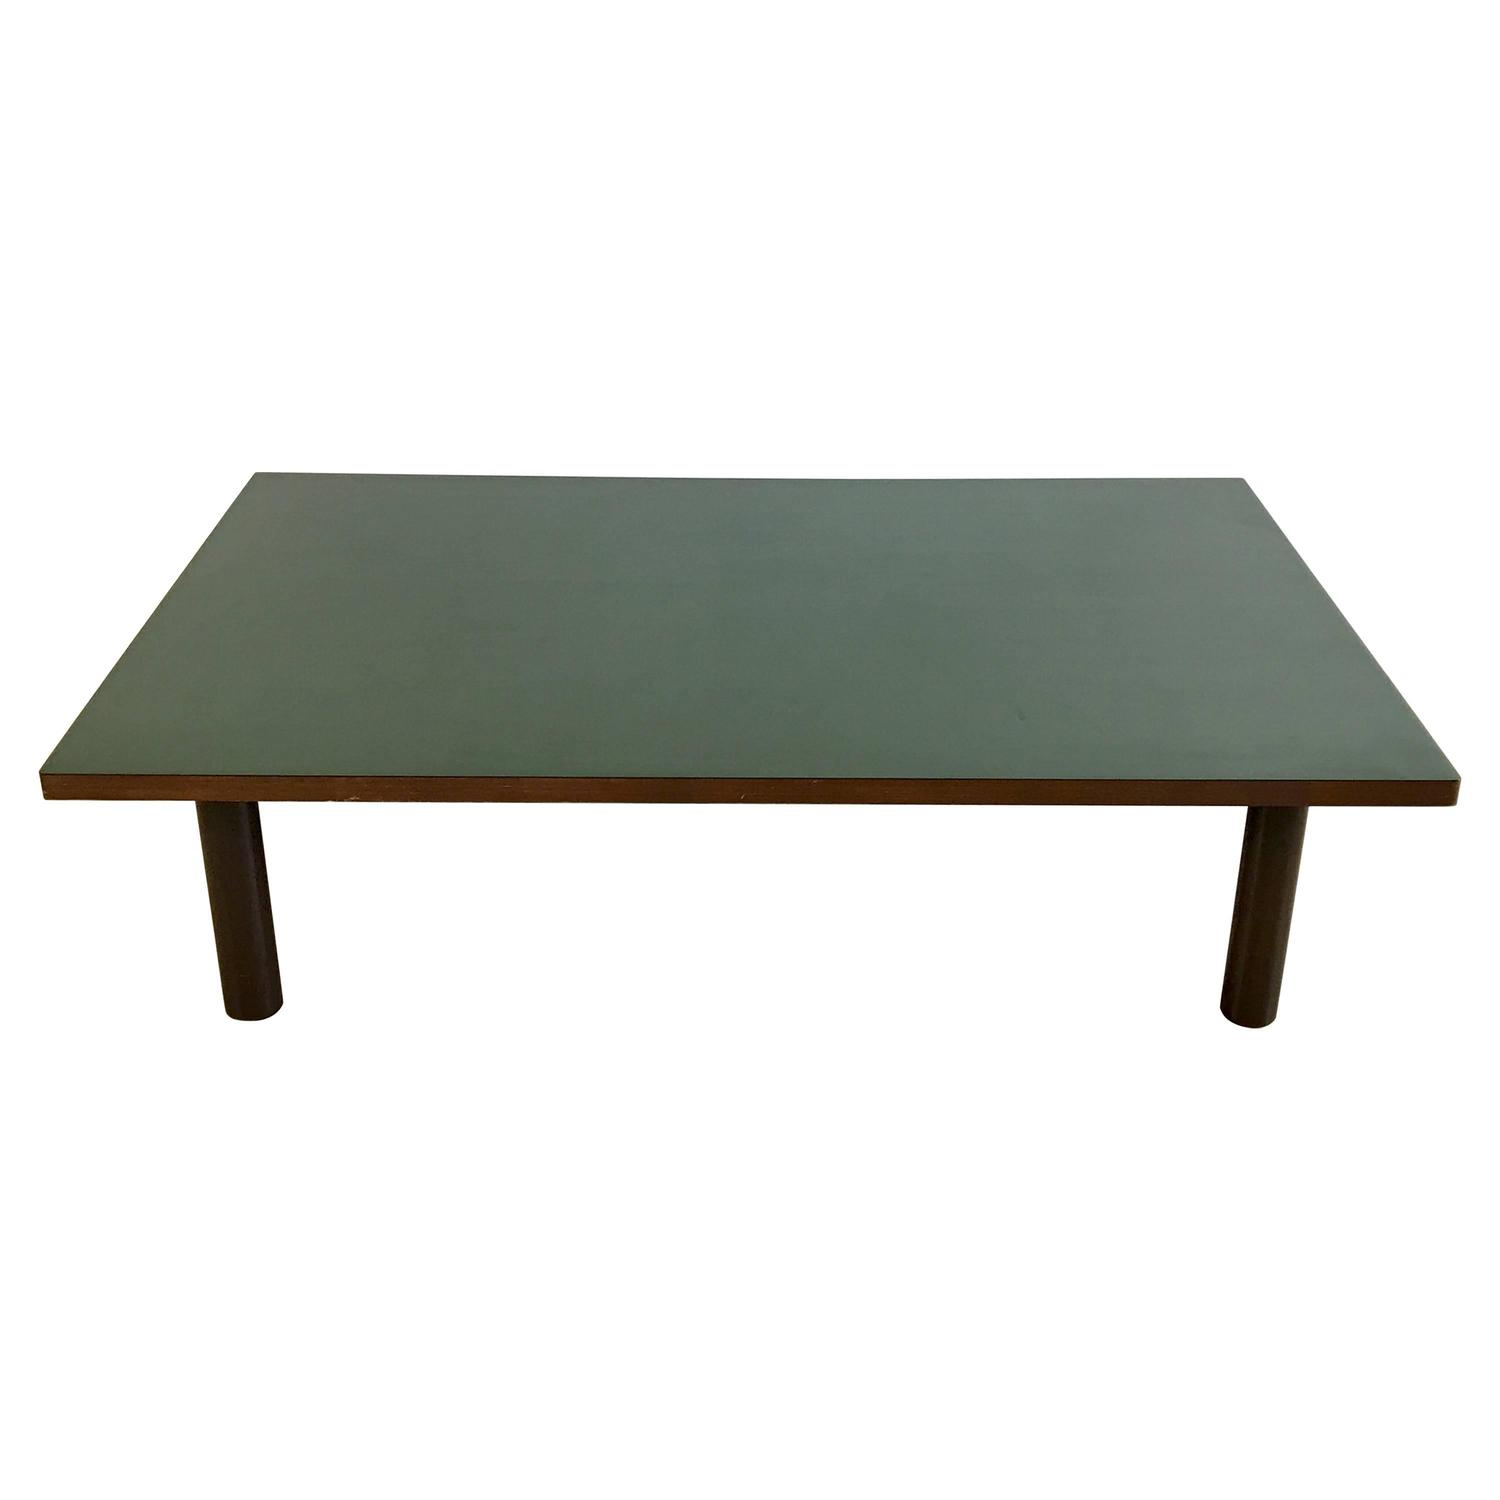 Japanese Tables 101 For Sale at 1stdibs